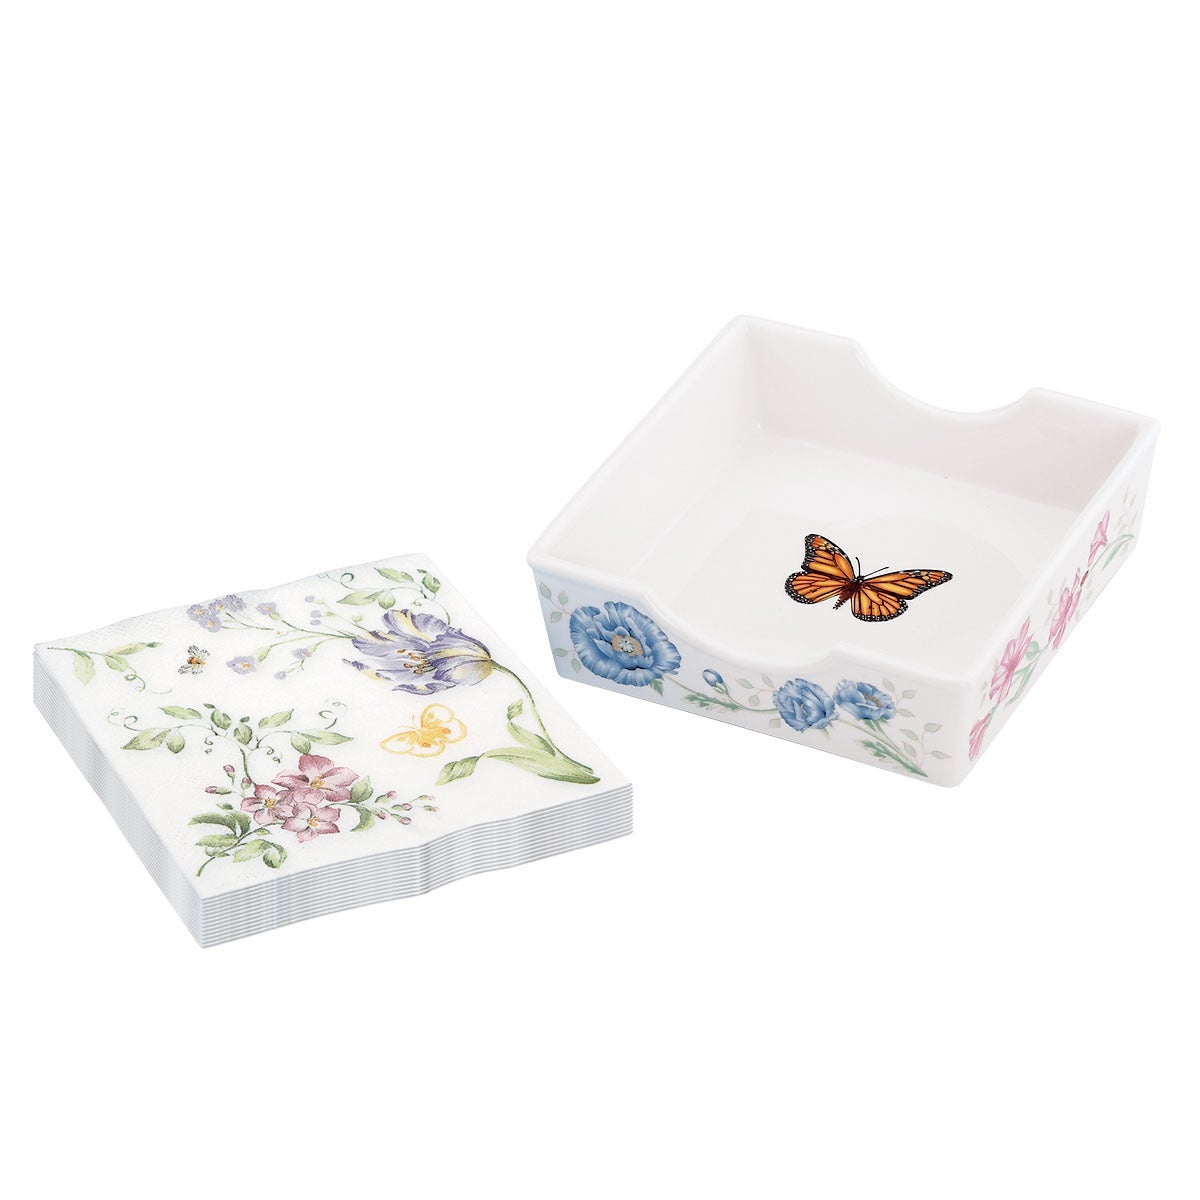 Lenox Butterfly Meadow Napkin Box with Printed Napkins, M...